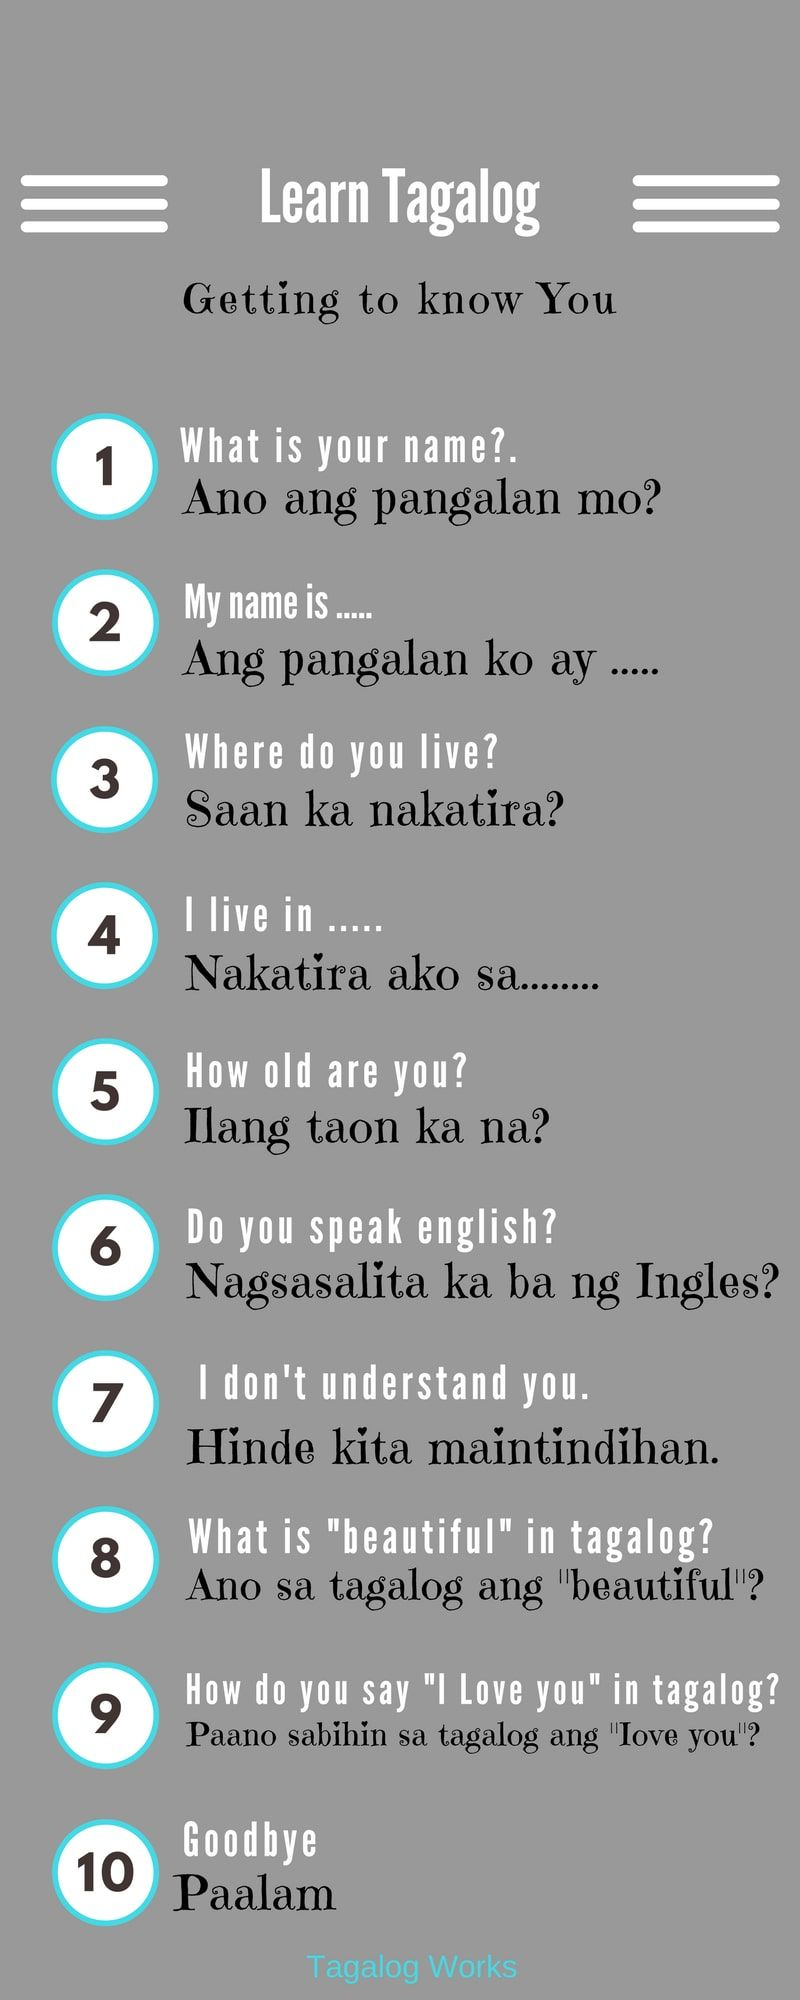 Arte Meaning In Tagalog Arte Tagalog Meaning In English